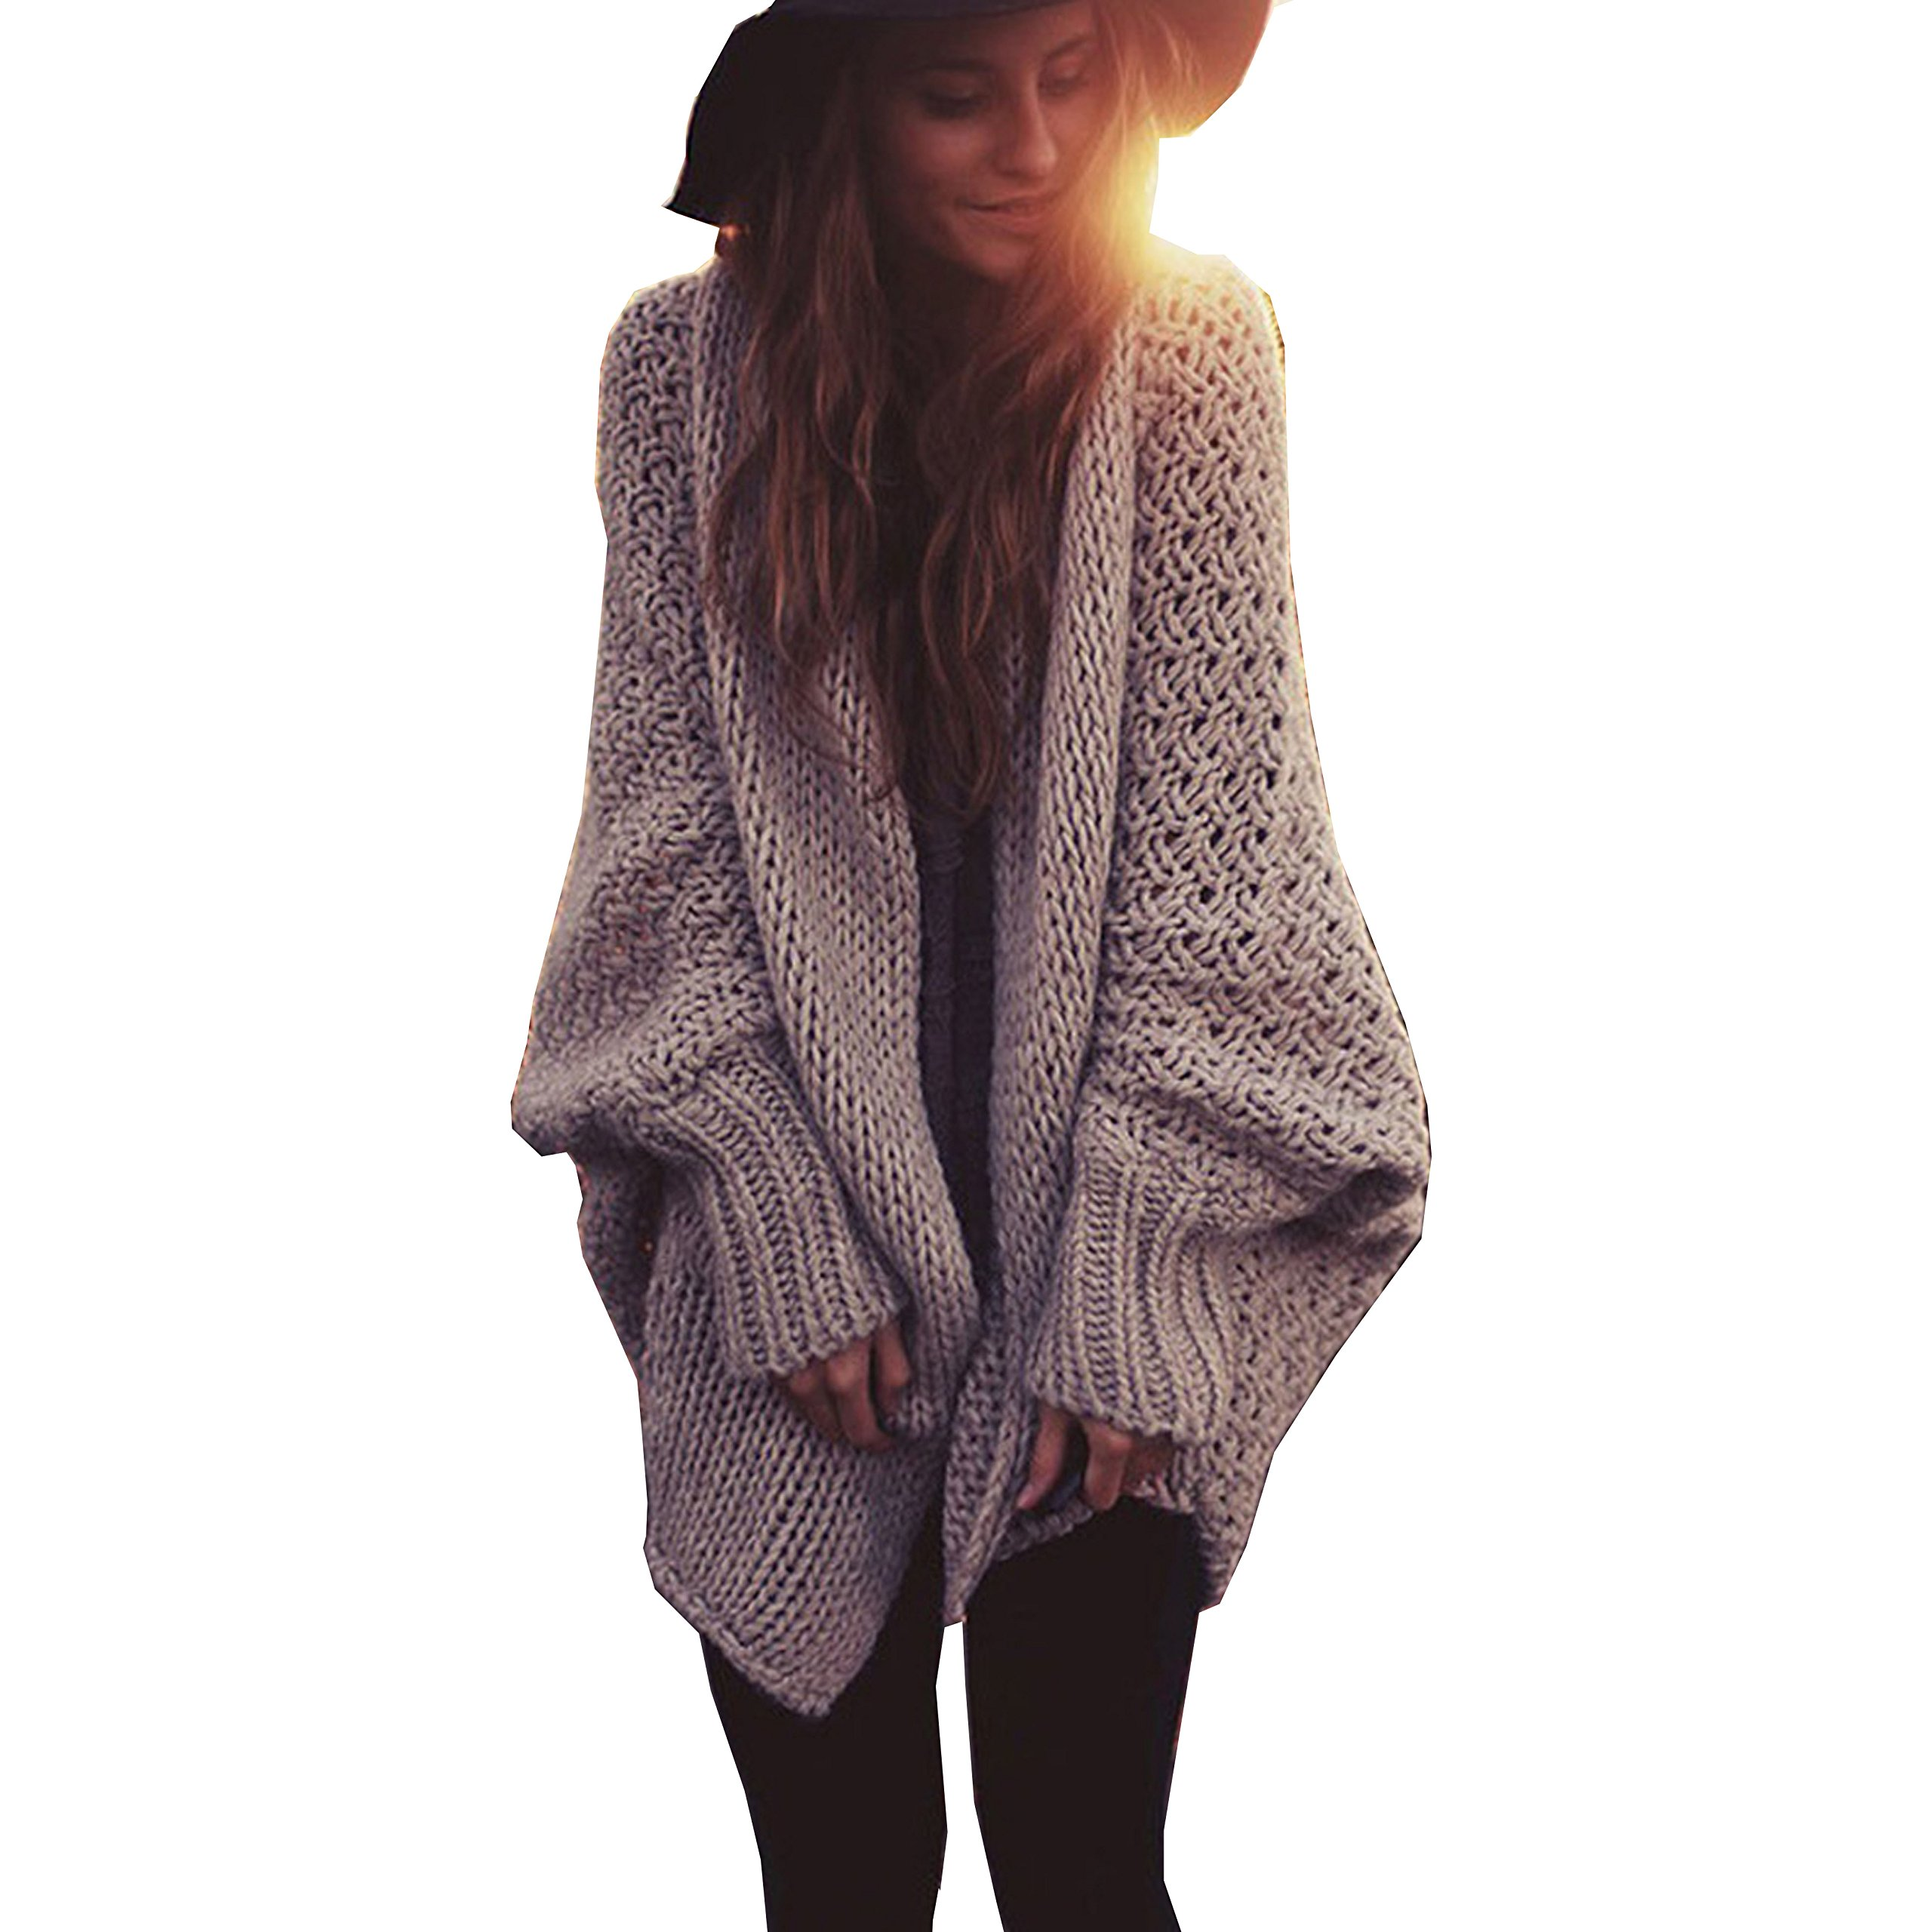 Mcupper-Women Oversized Loose Knitted Sweater Batwing Sleeve Taupe (One Size Fits Most) by Mcupper (Image #1)